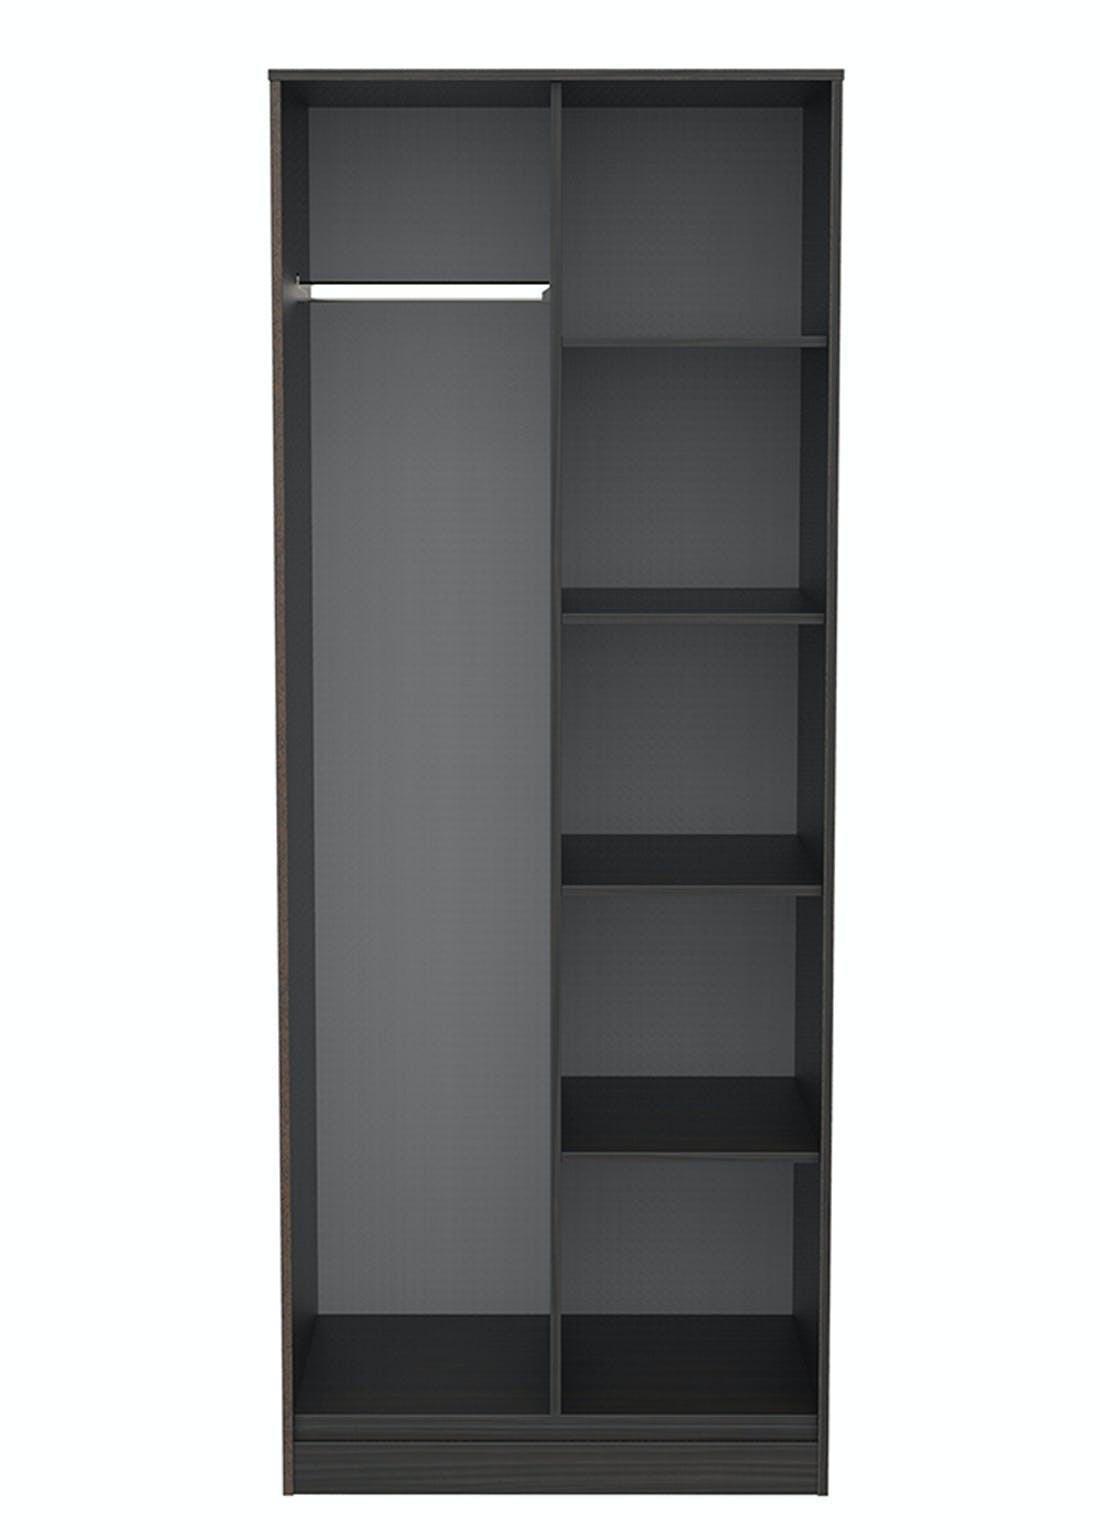 Swift Cordoba Open Shelf Wardrobe (201.5cm x 76.5cm x 53cm)